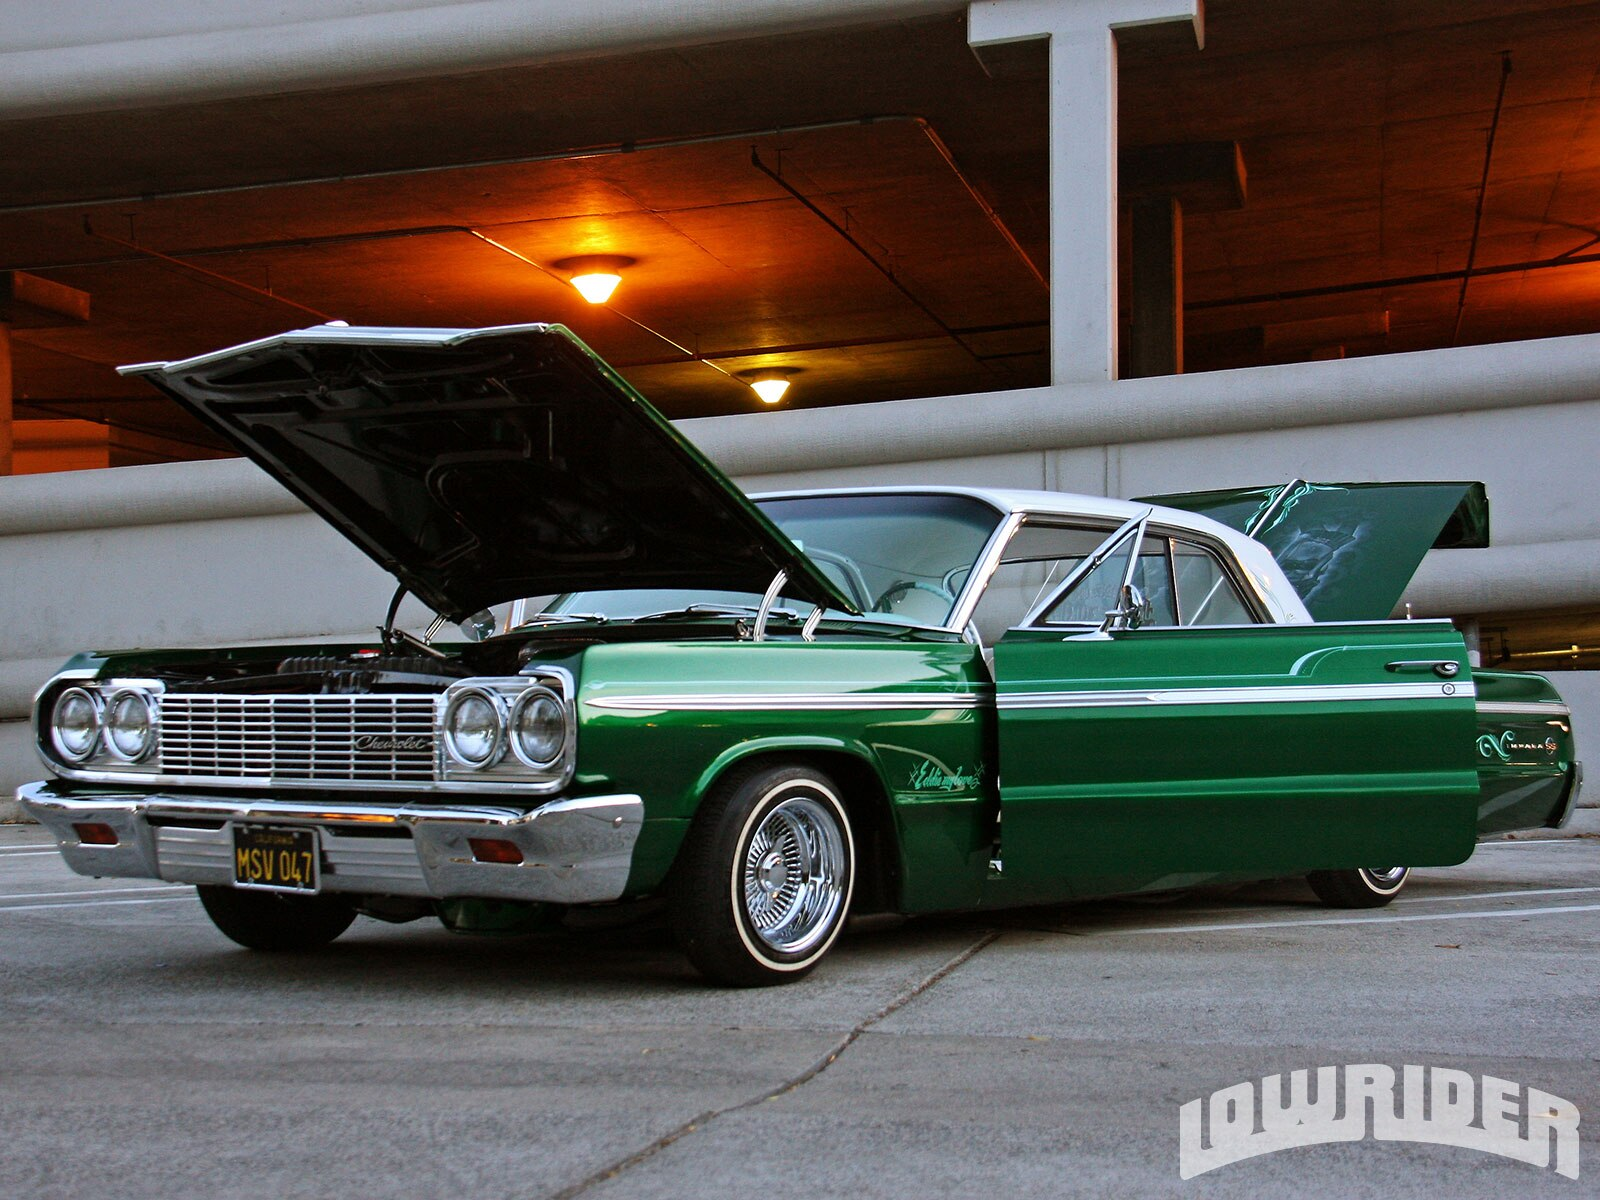 Car Boy Wallpaper 1964 Chevrolet Impala Lowrider Magazine